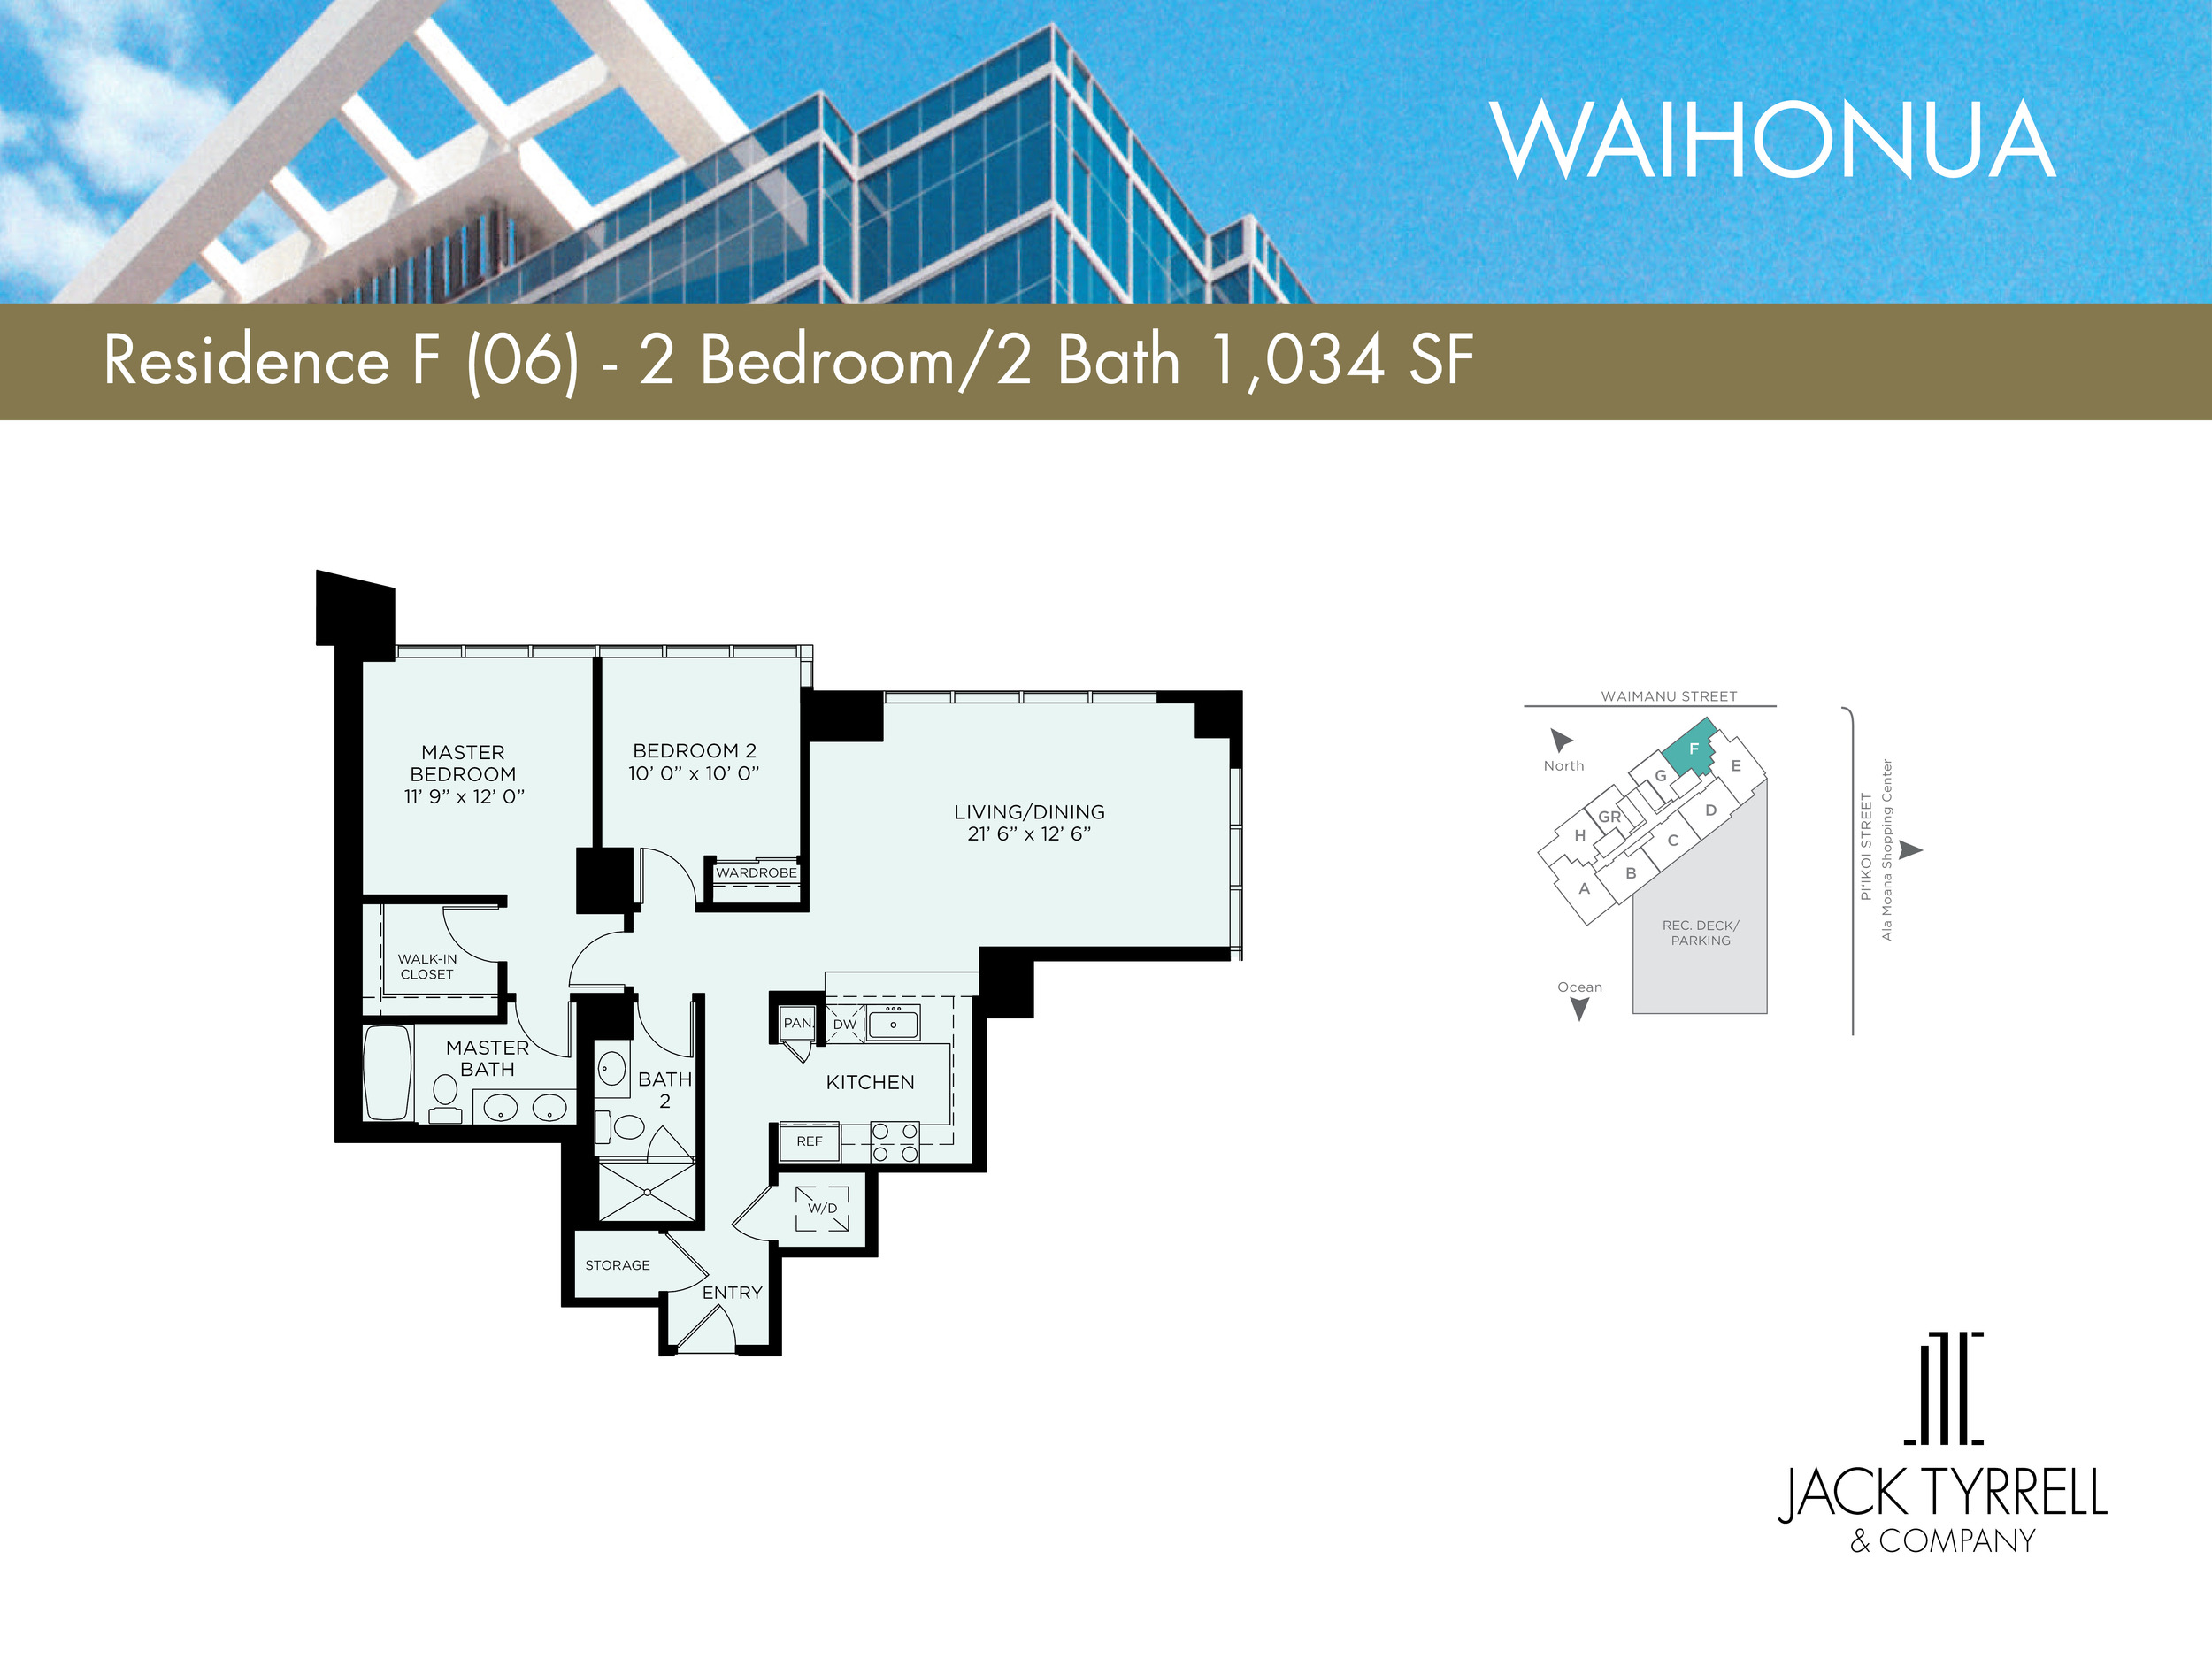 Waihonua 05 Unit (E) Floor Plan - Estimated Monthly Maintenance fee is $899.73